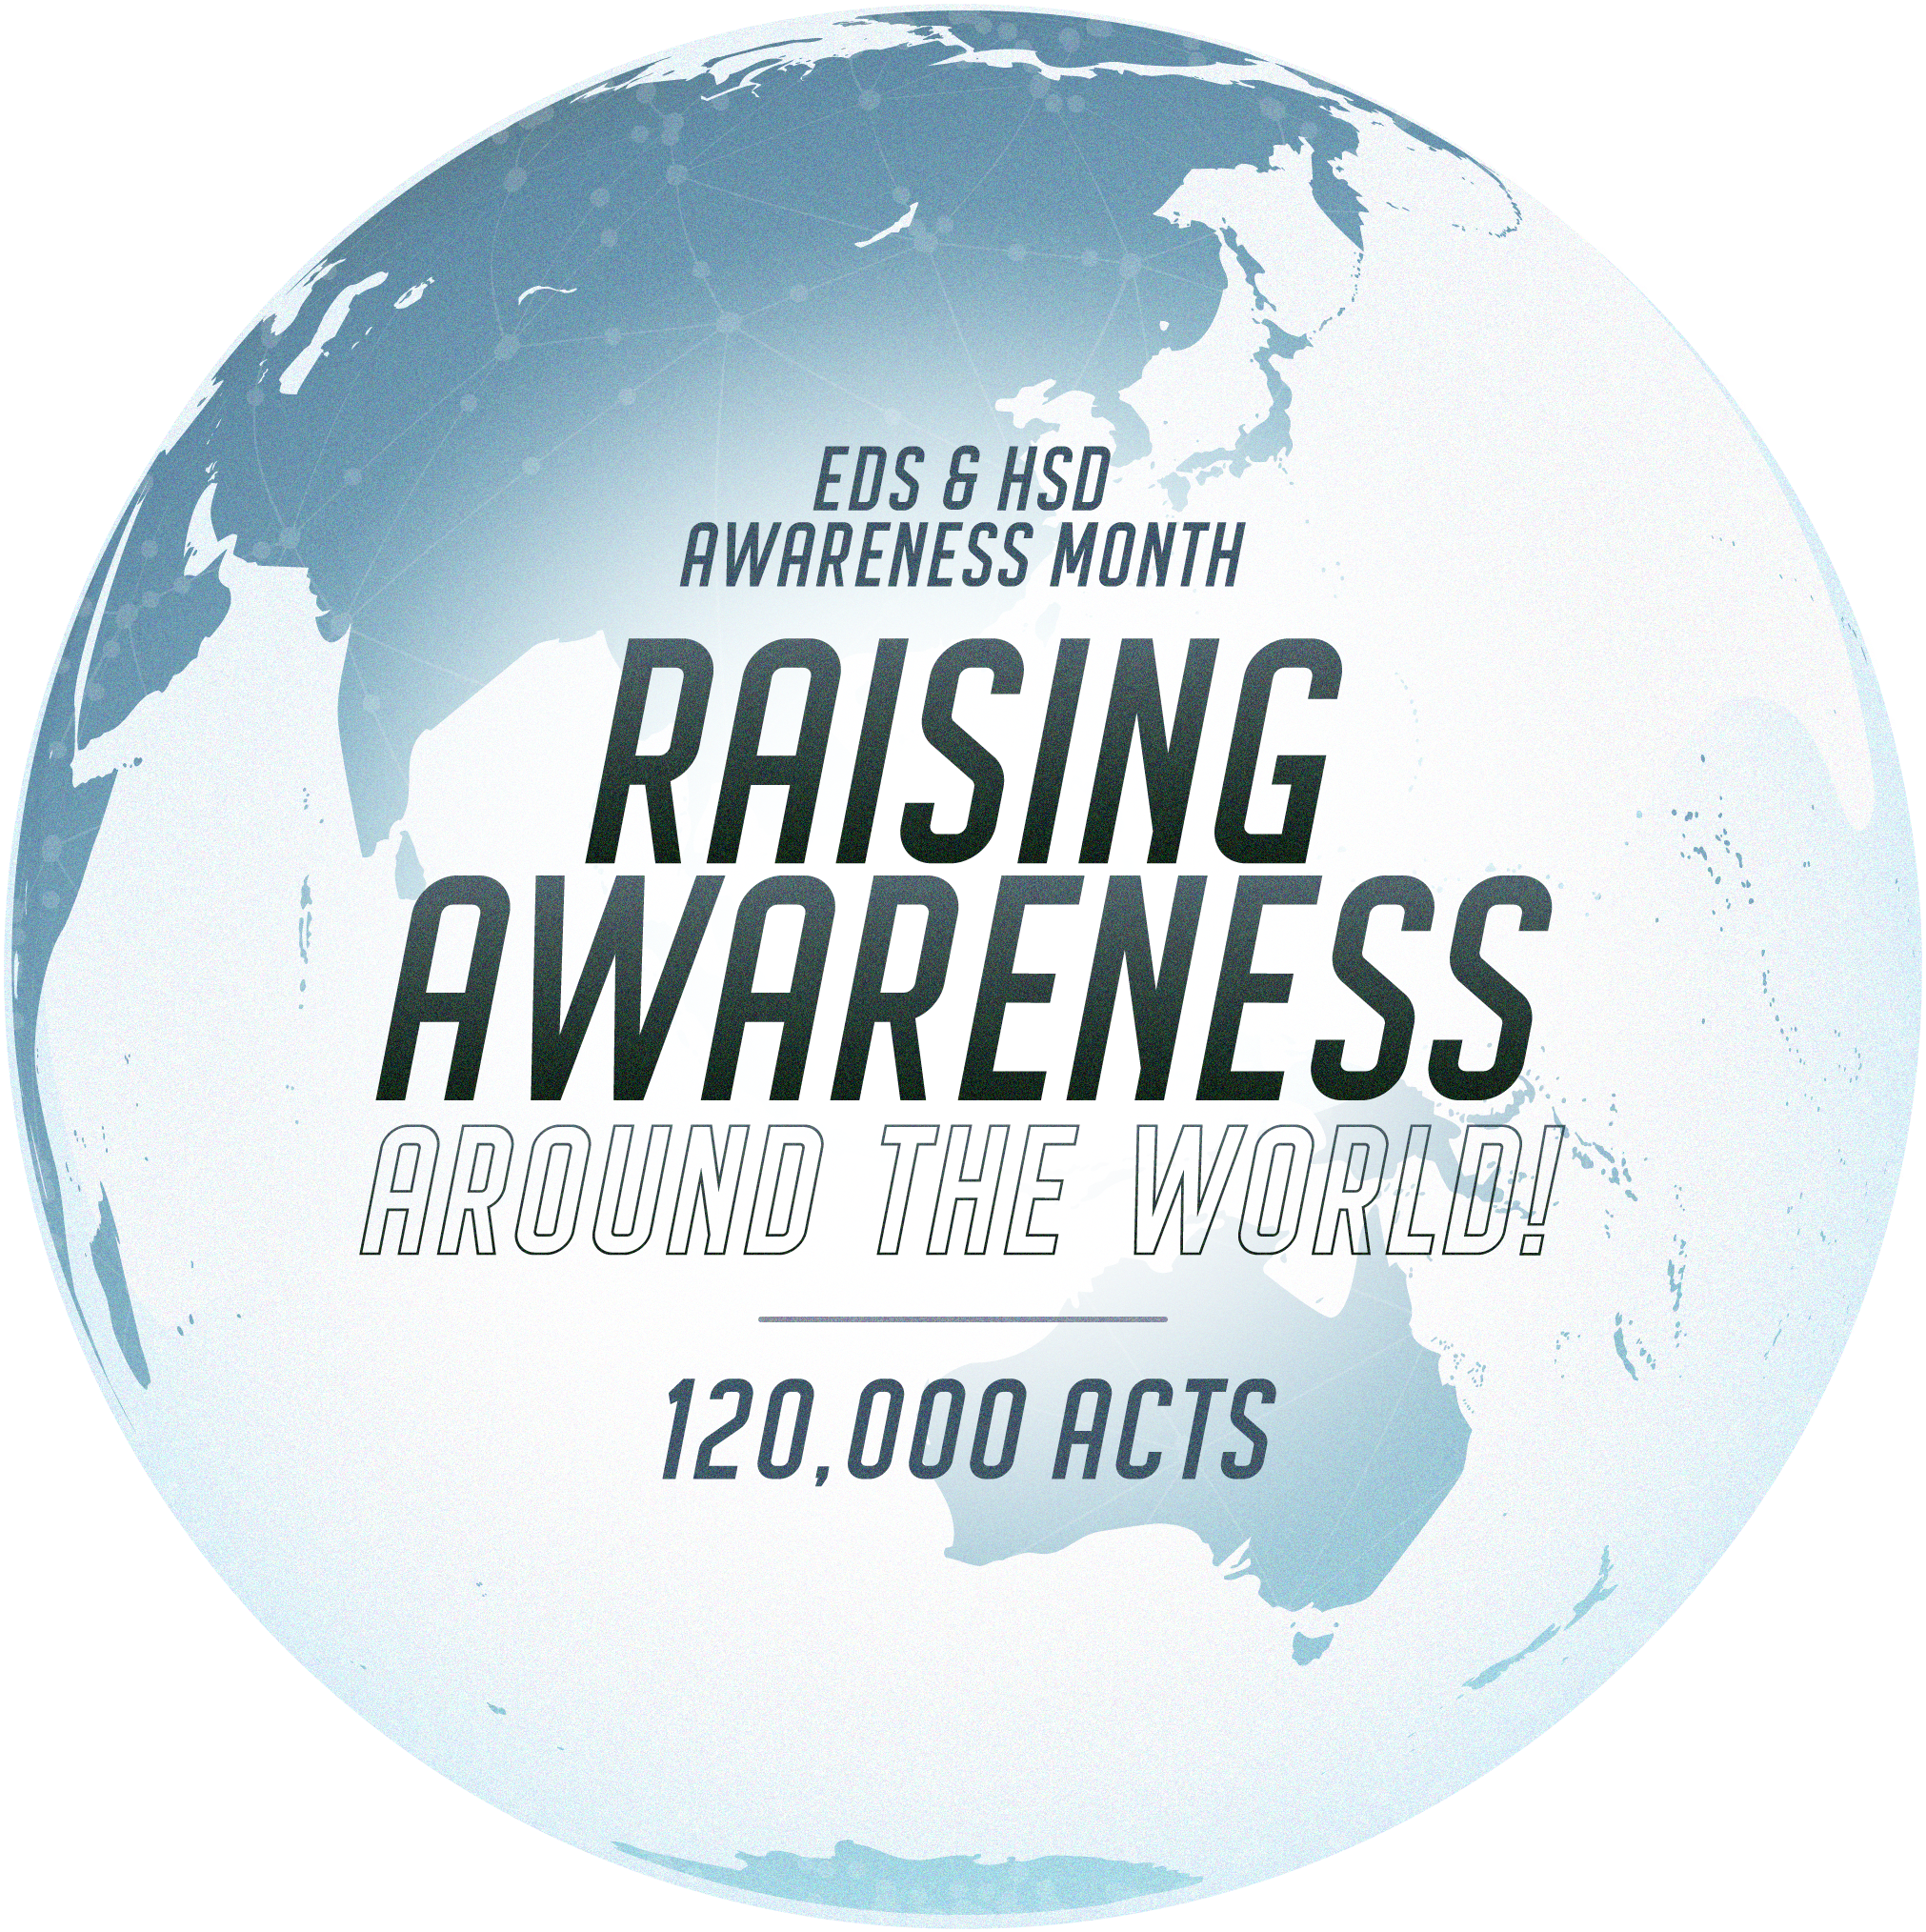 Raising awareness around the world 120,000 acts of awareness